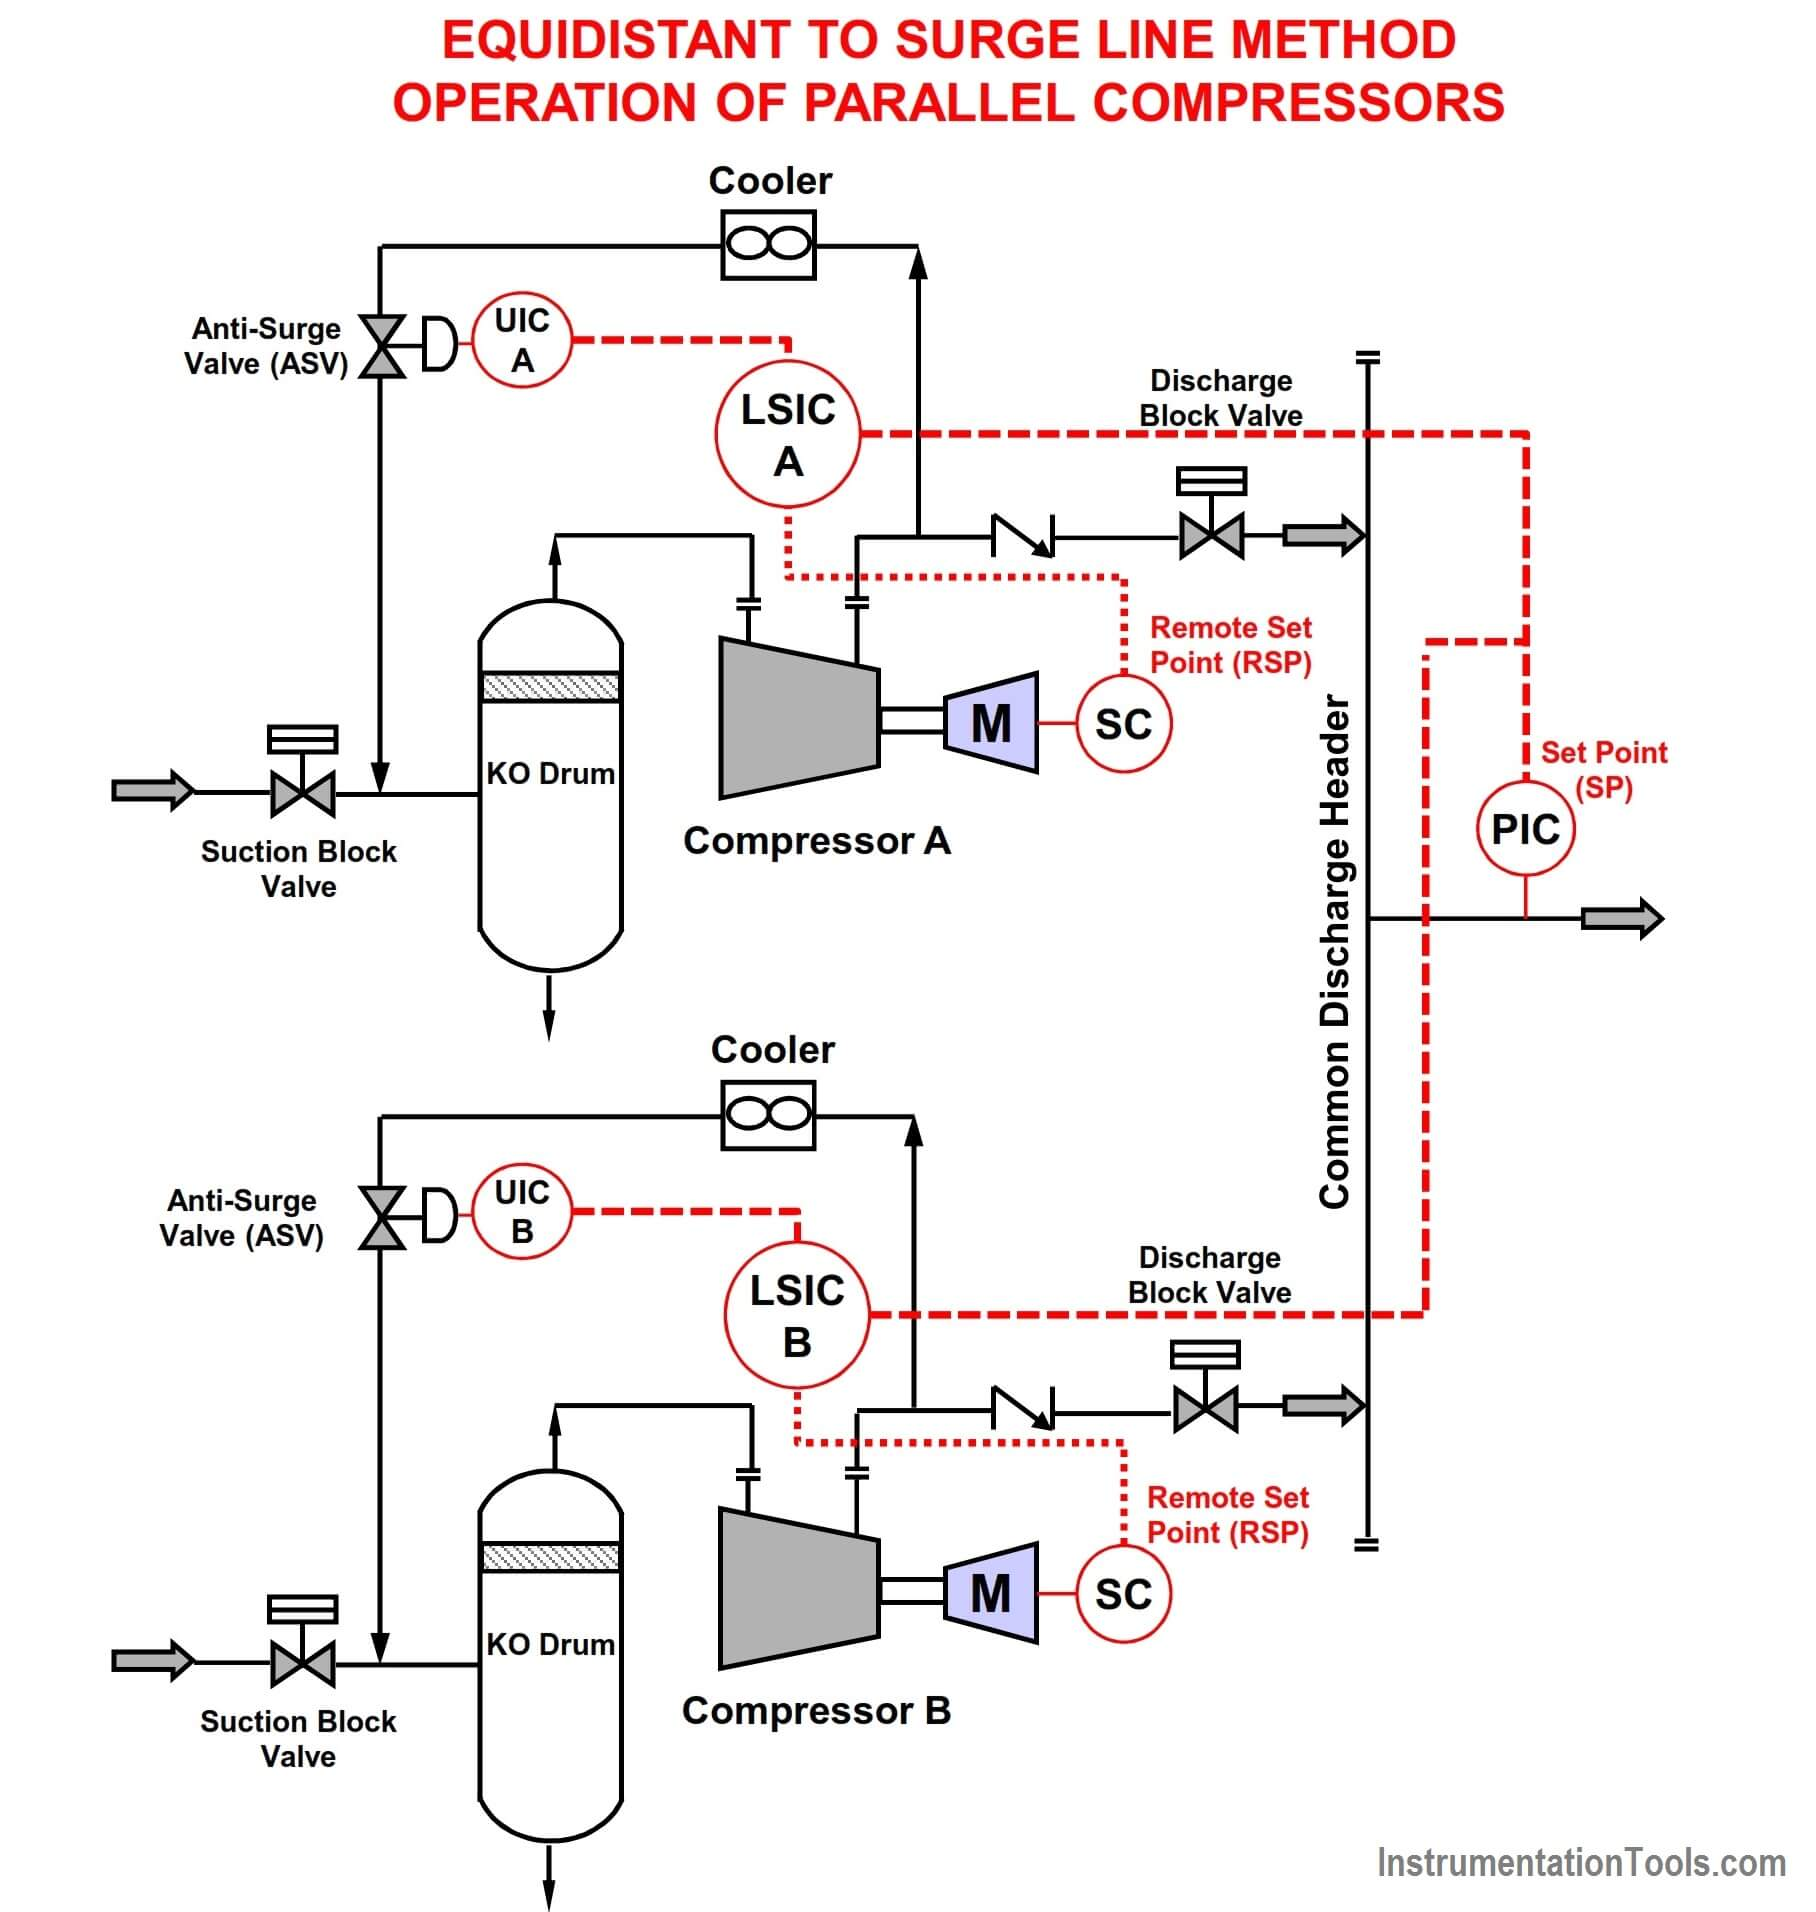 Equidistant to Surge Line Method Operation of Parallel Compressors